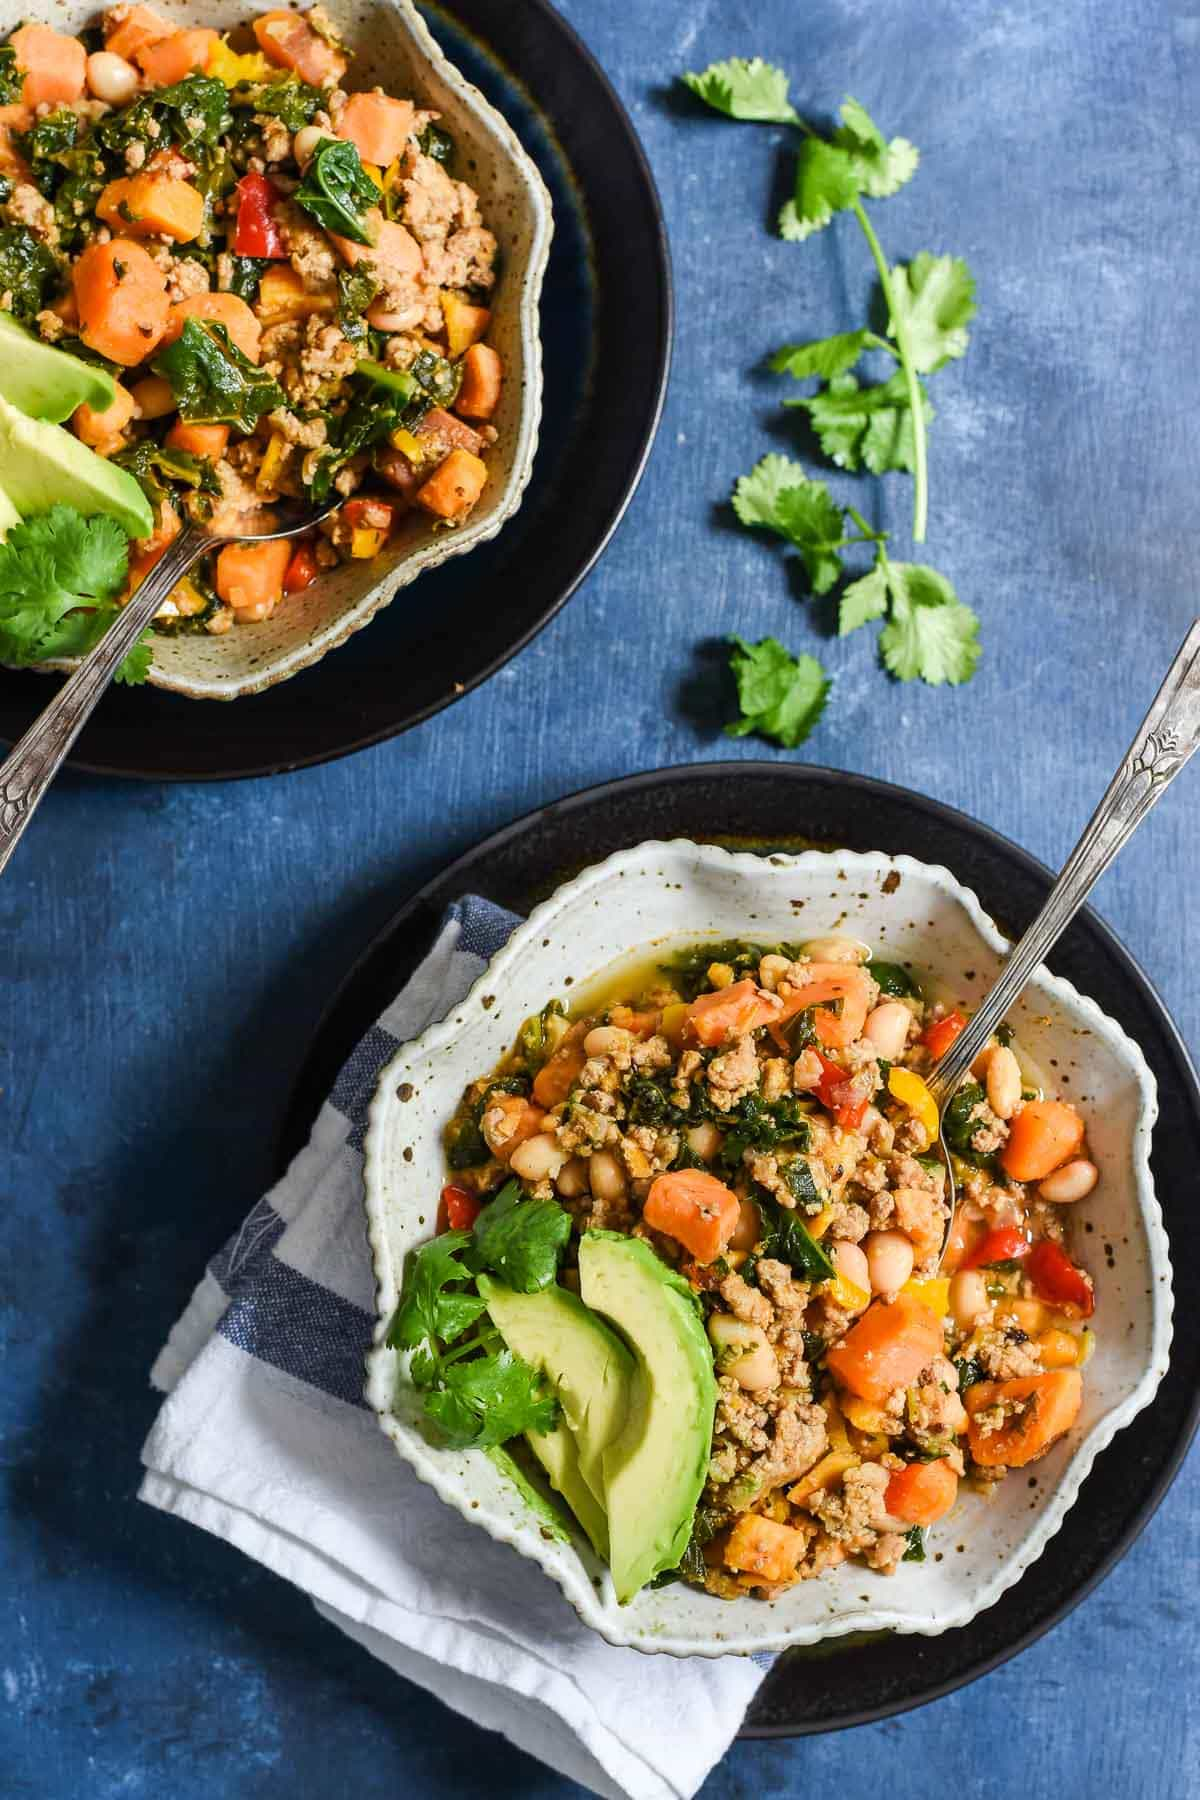 This Chipotle Sweet Potato Turkey Chili is a super hearty, healthy meal that's gluten free and dairy free!